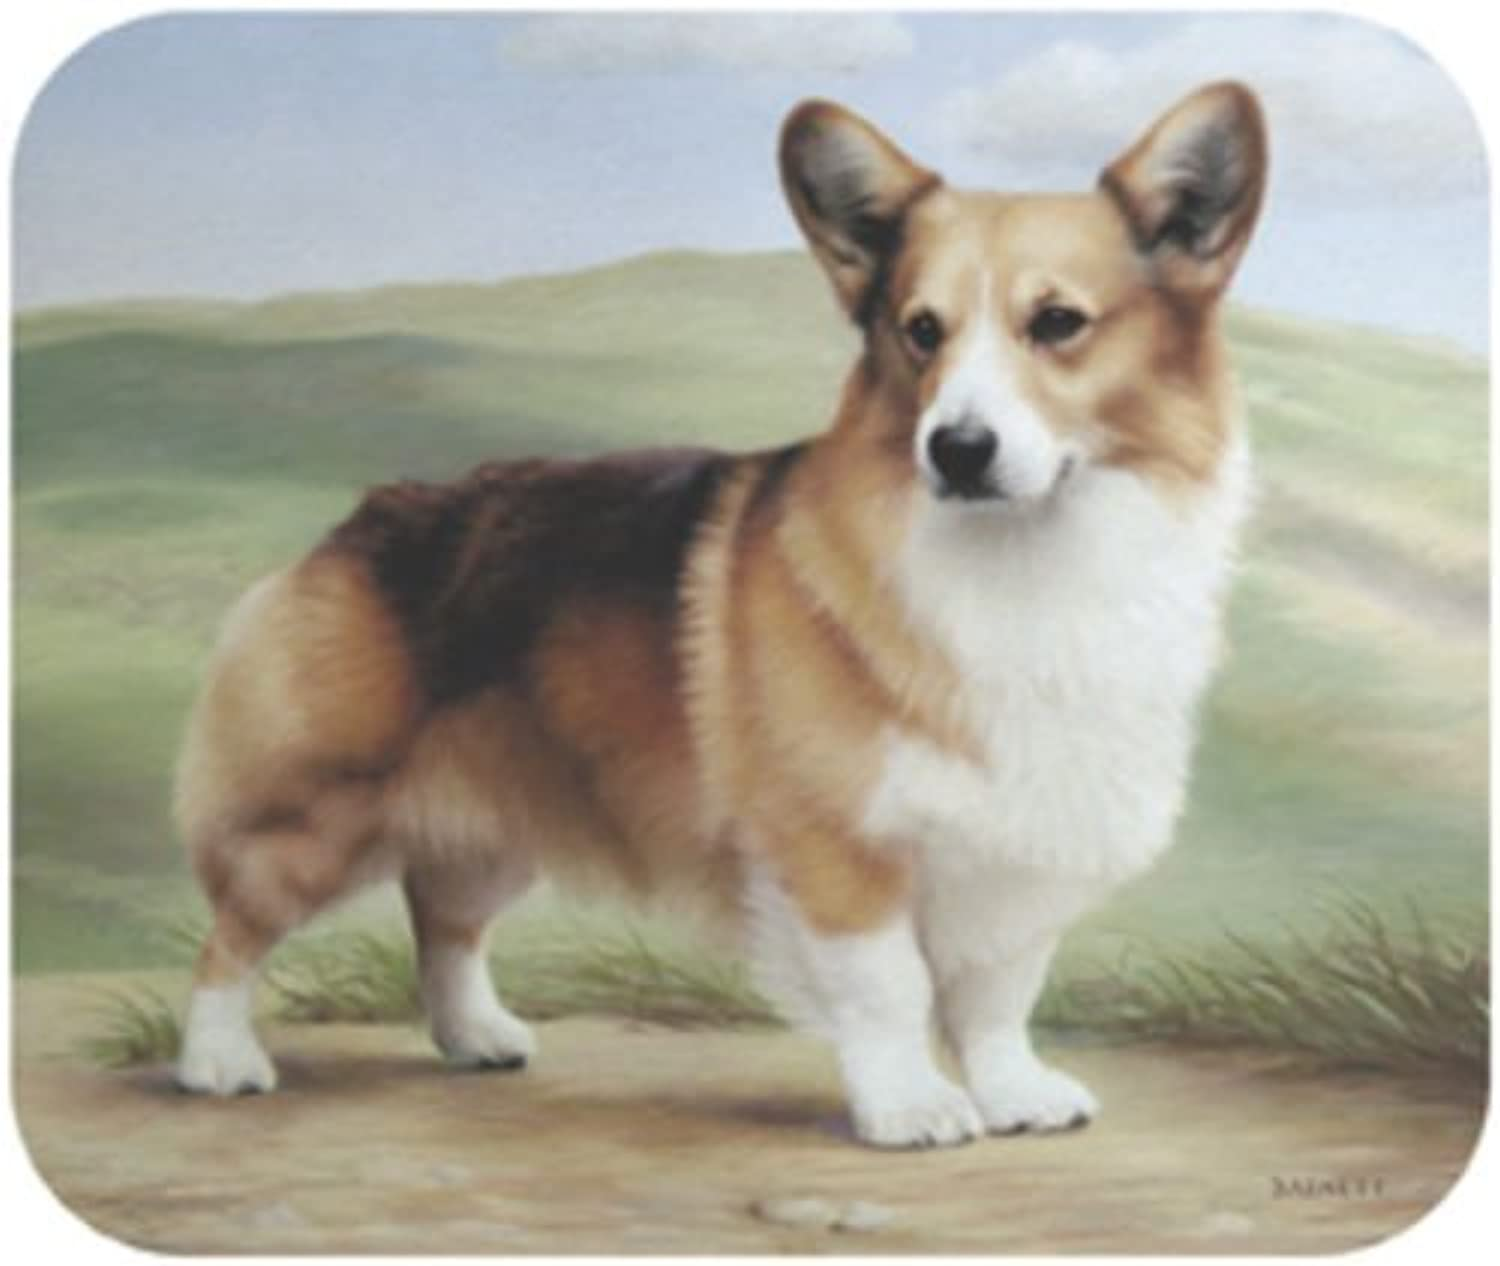 Corgi On Porch Dog Puppy Mouse Pad MousePad by Fiddler's Elbow B0141NIVG6   | Genial